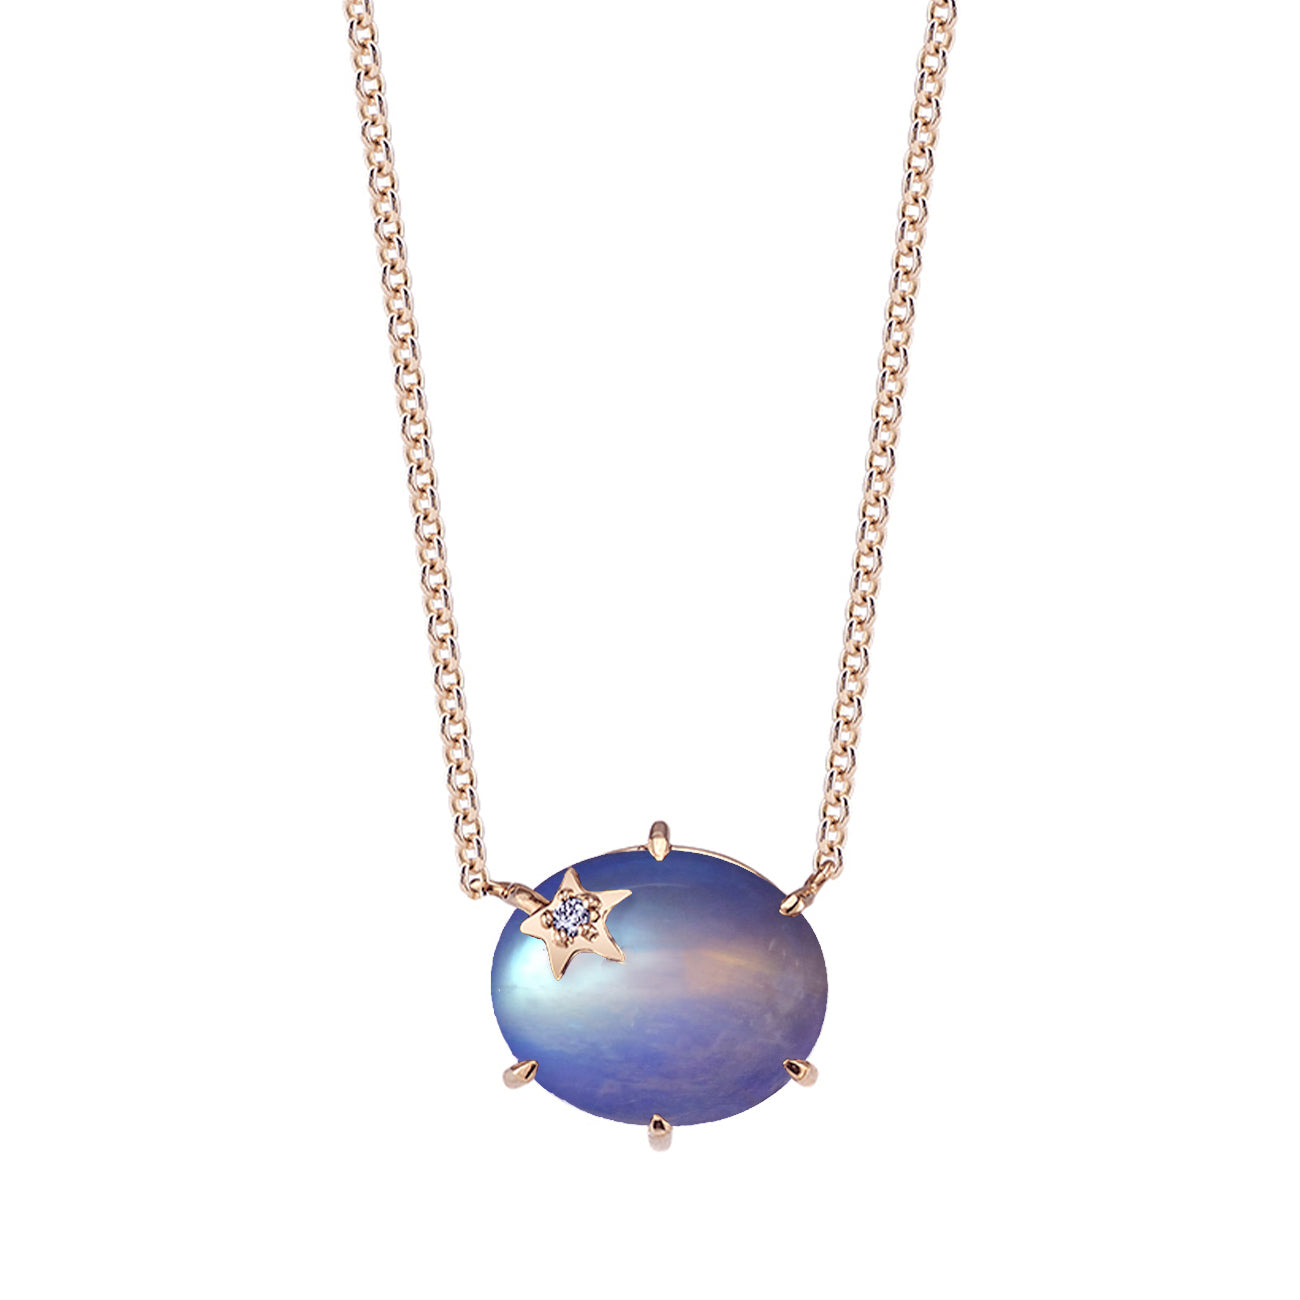 Mini Galaxy Moonstone Necklace - Andrea Fohrman - Necklaces | Broken English Jewelry